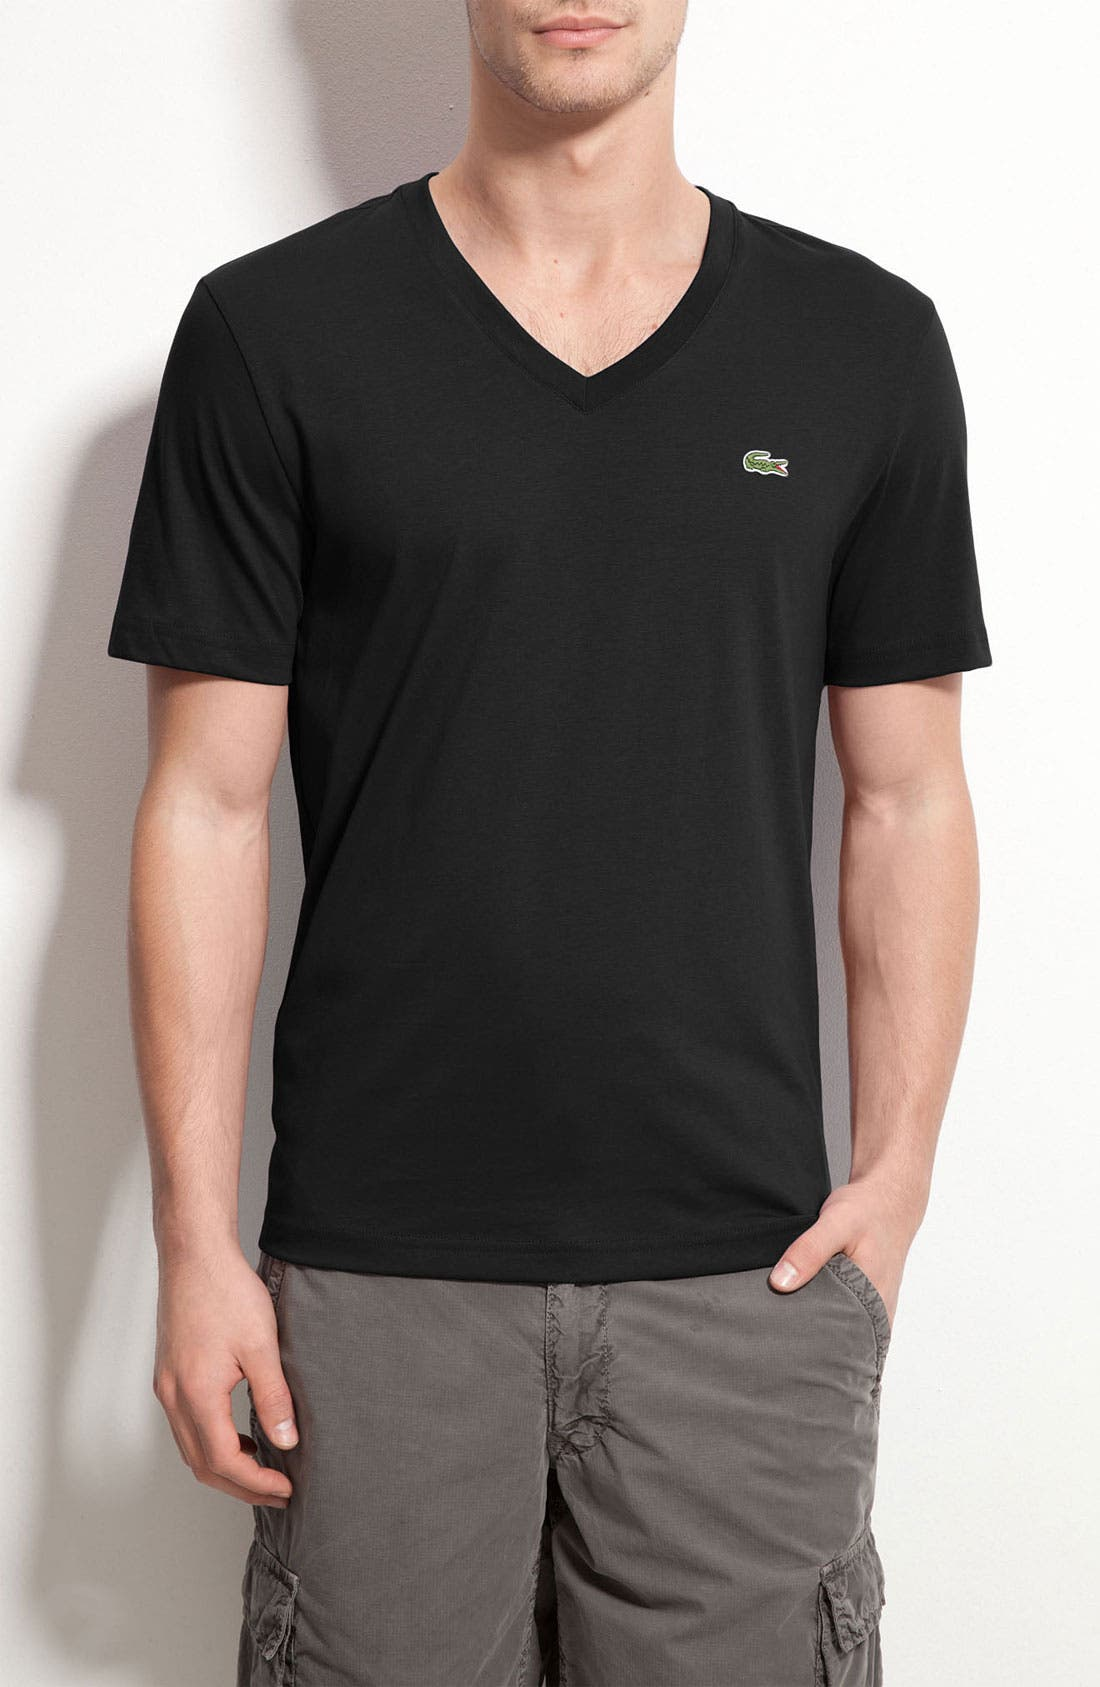 Main Image - Lacoste L!VE Trim Fit Jersey V-Neck T-Shirt